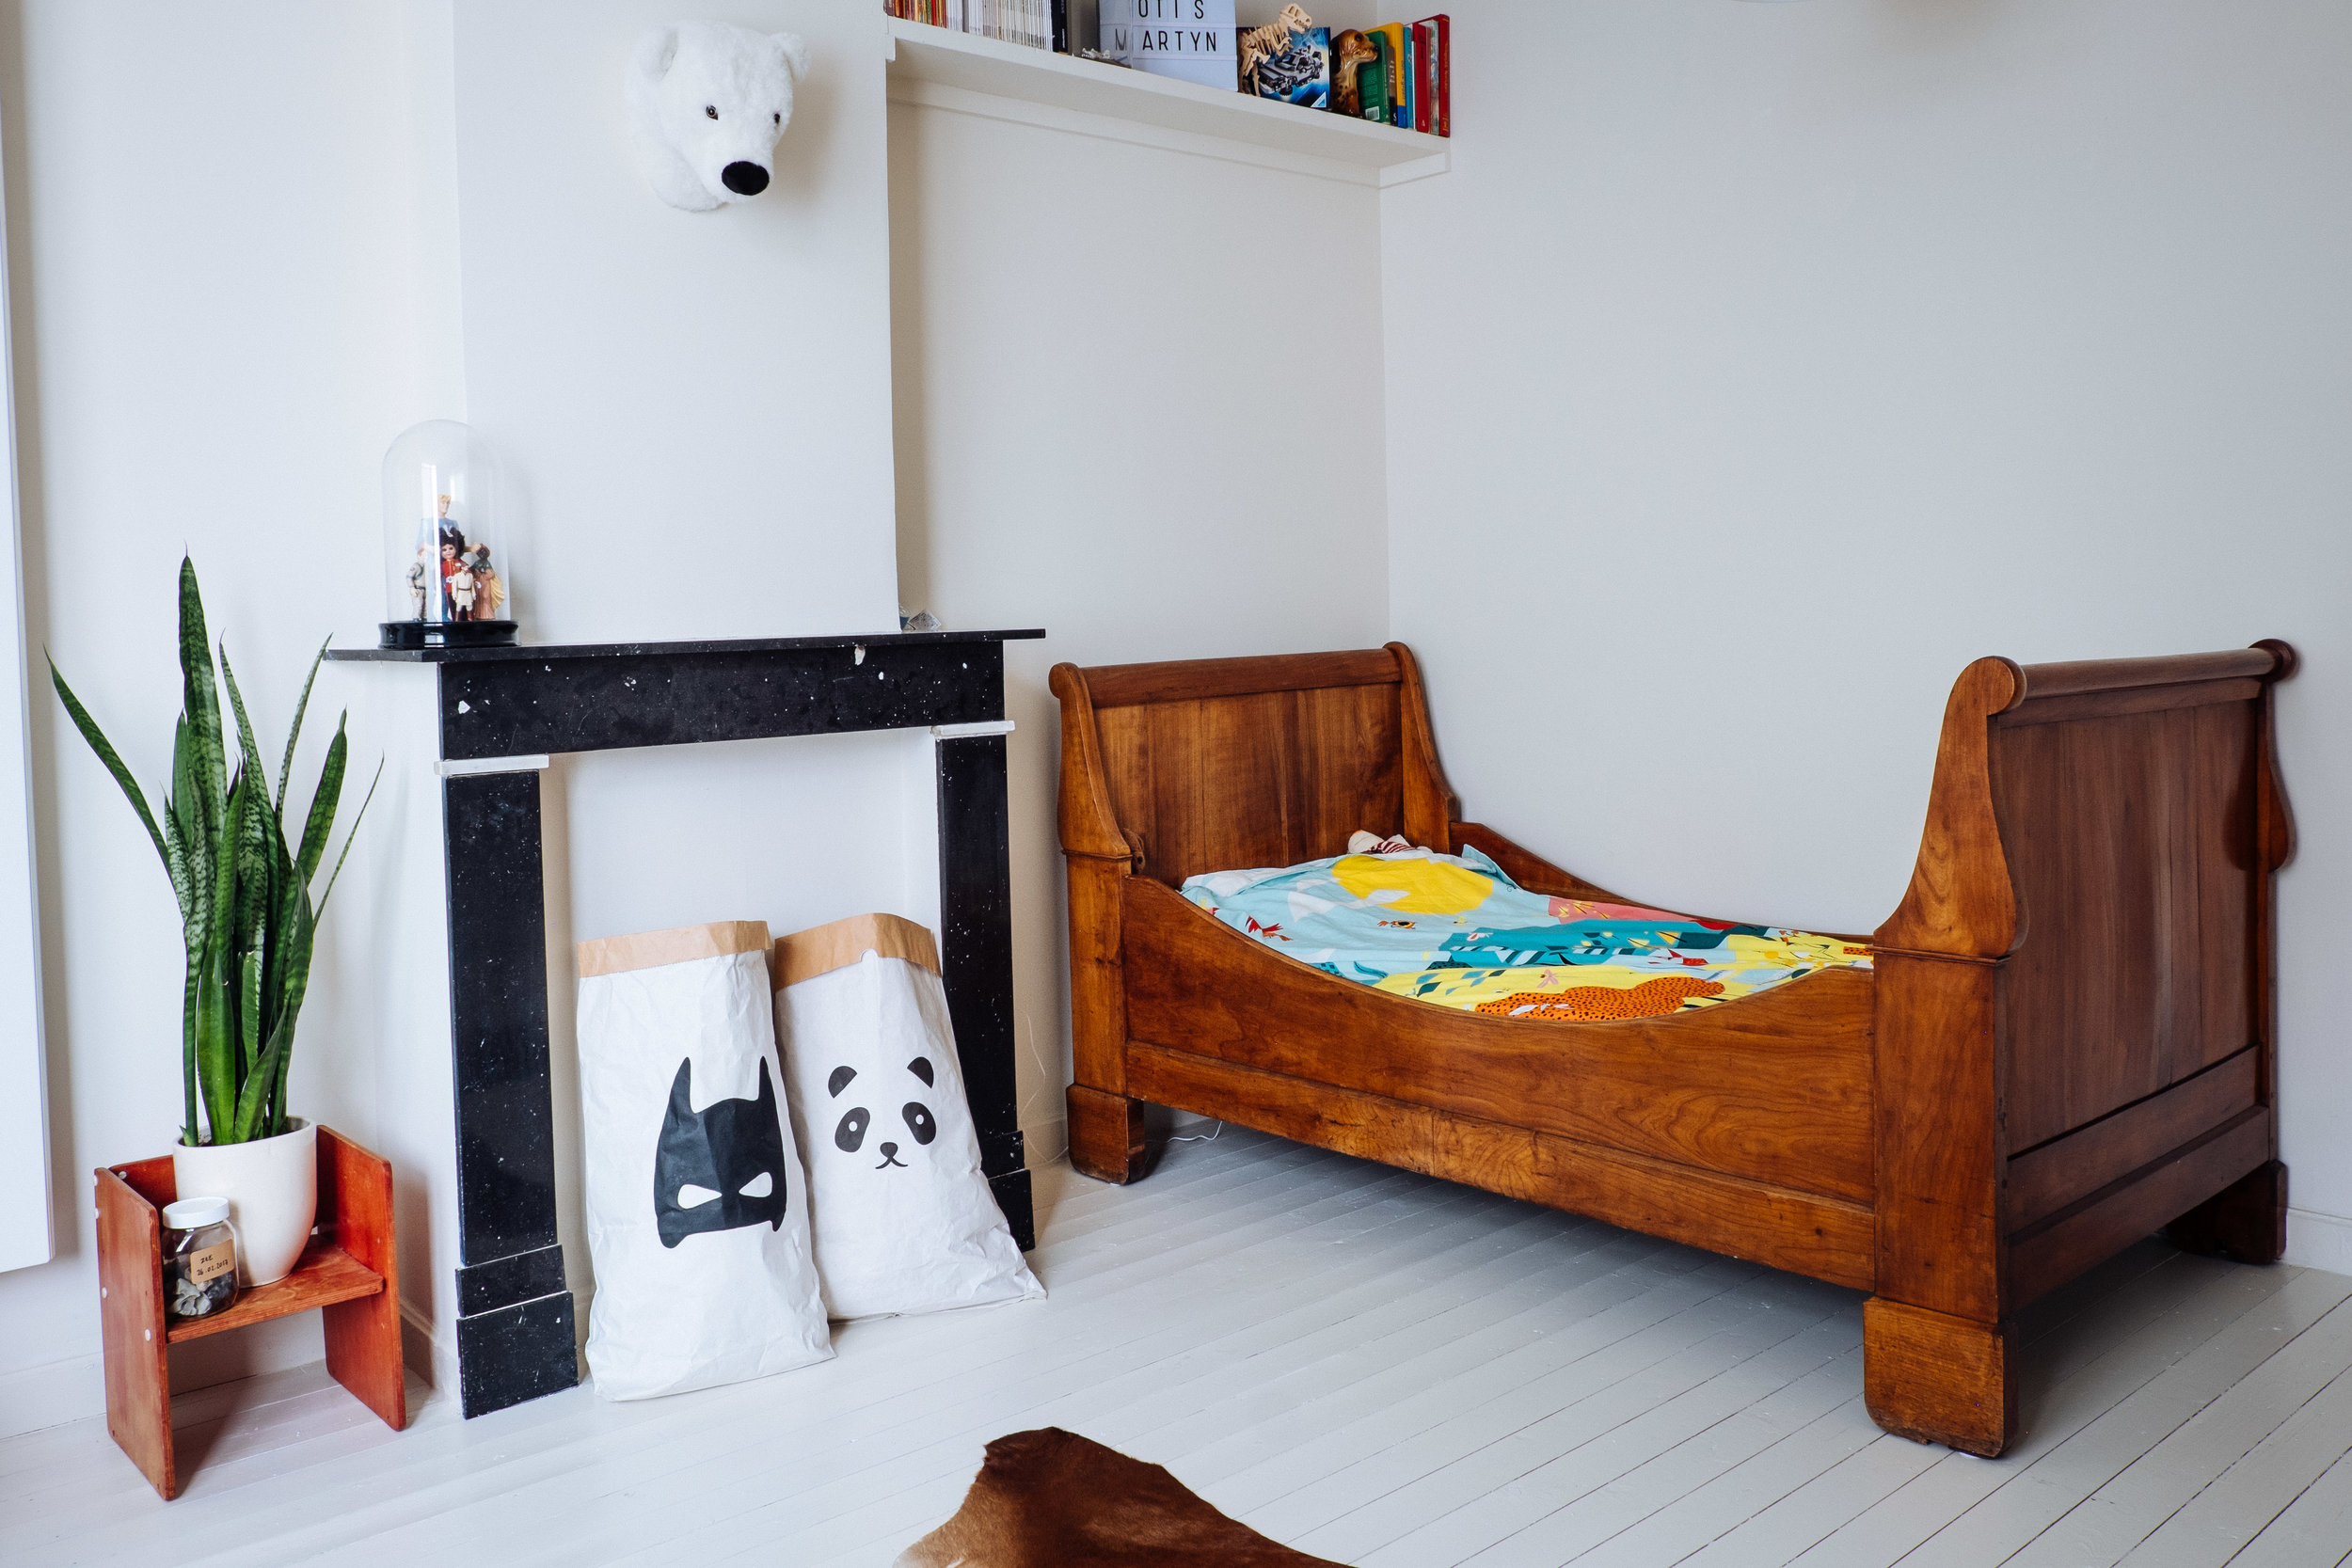 'A combination of heirlooms, treasuresand gifts' - Otis is already the fifth generation that sleeps in this wooden bed. It almost got ruined in the war, when they bombed the house!